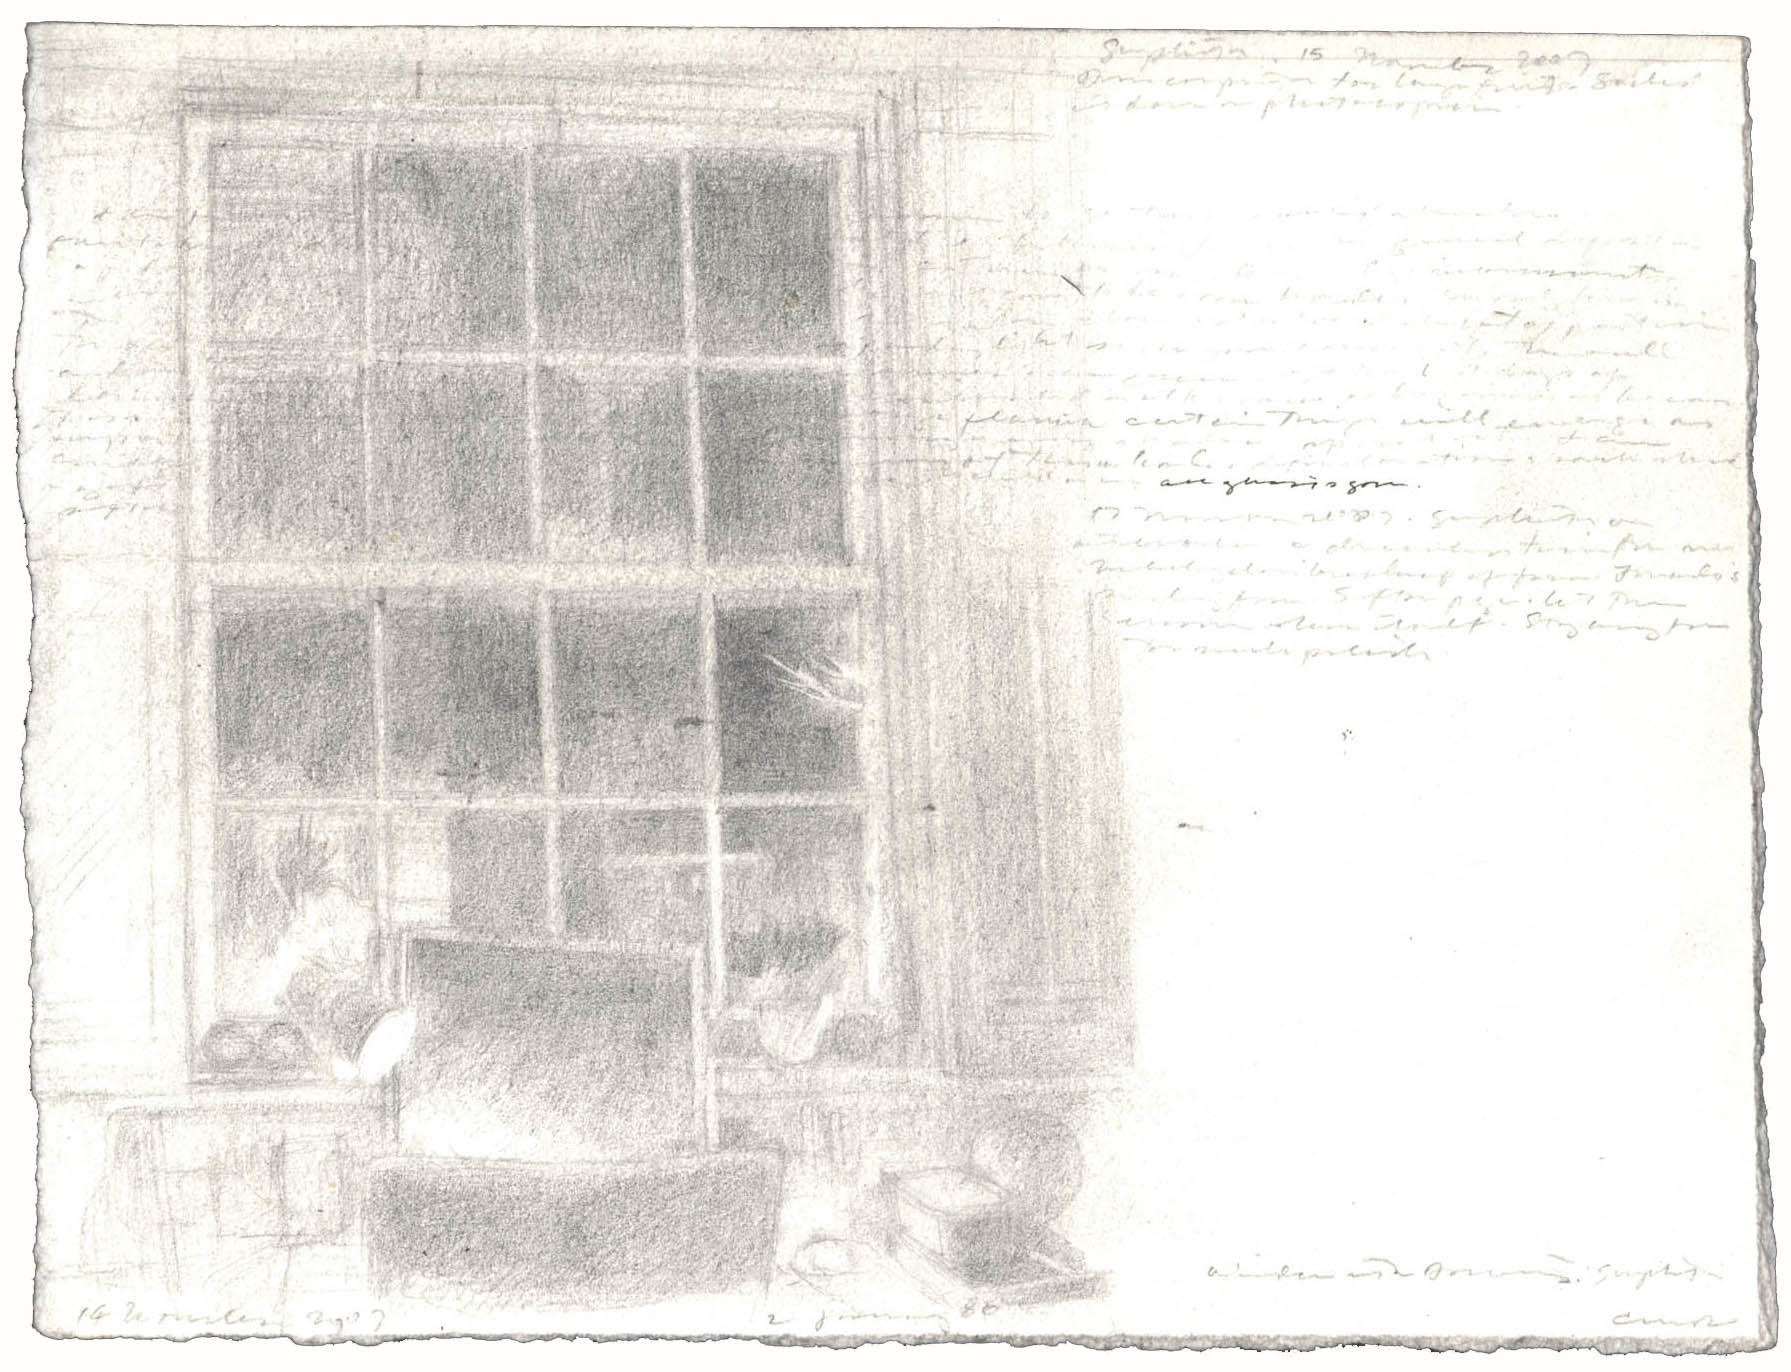 Window with Drawing: Graphite image